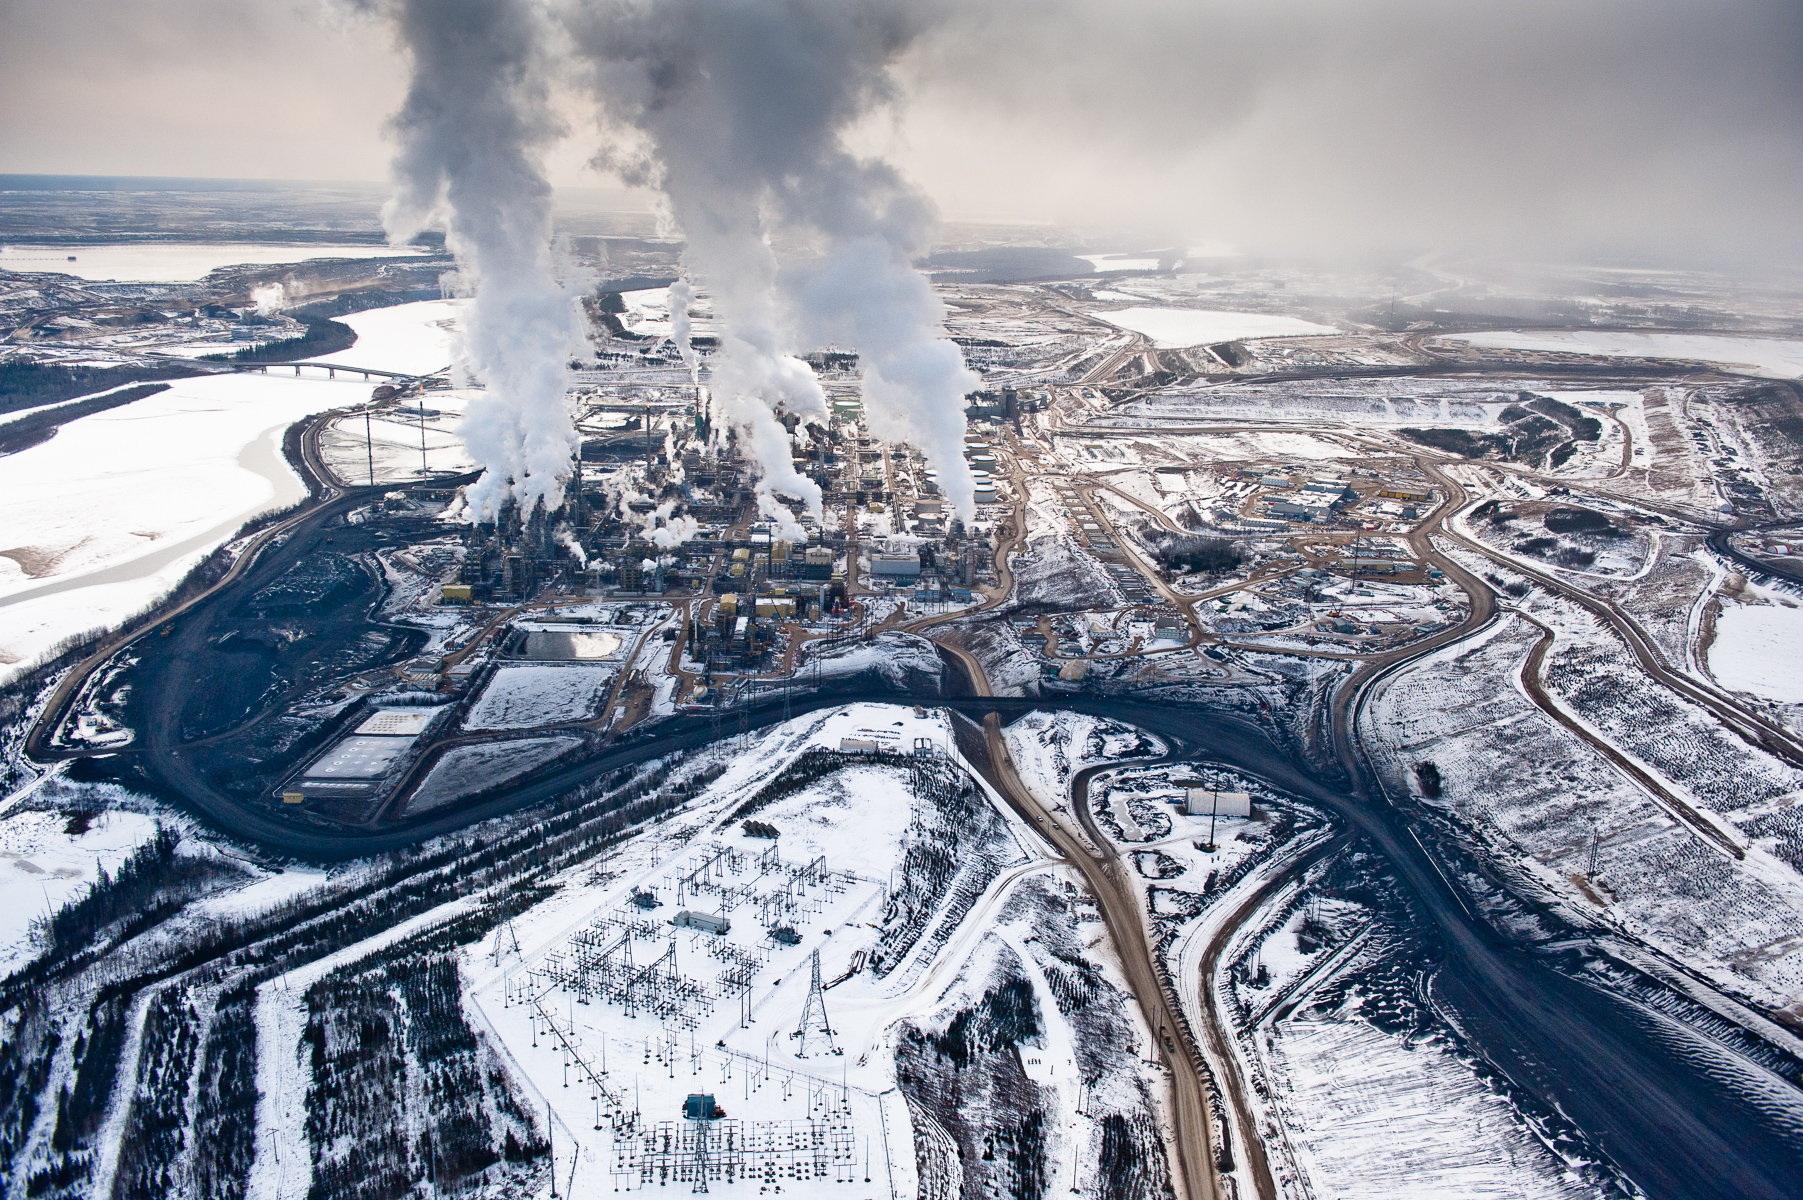 "Suncor  Upgrader in Winter                                                                    Northern Alberta. Canada. 2010. The Alberta Tar Sands are Canada's single largest, and fastest growing, source of carbon. They produce about as much carbon annually as the nation of Denmark. The refining of the tar-like bitumen requires far more water and energy than the production of conventional oil and produces significantly more greenhouse gas. Fine Art Print Price ListOpen and Larger Edition Prints. These are produced to the same high standards as our limited edition prints and offer collectors a more affordable way to get to know our work.Prints  are limited to an edition of 50 in each size above 20"" X 24"". Prices are for prints only and do not include tax or shipping.All prices are in US dollars.			12""x18"" 					$350.16""x24"" 				       $650.20""x30"" 					$1000.24""x36"" 				       $1500. 30""x45"" 					$2300.40""x60""				      $3600"